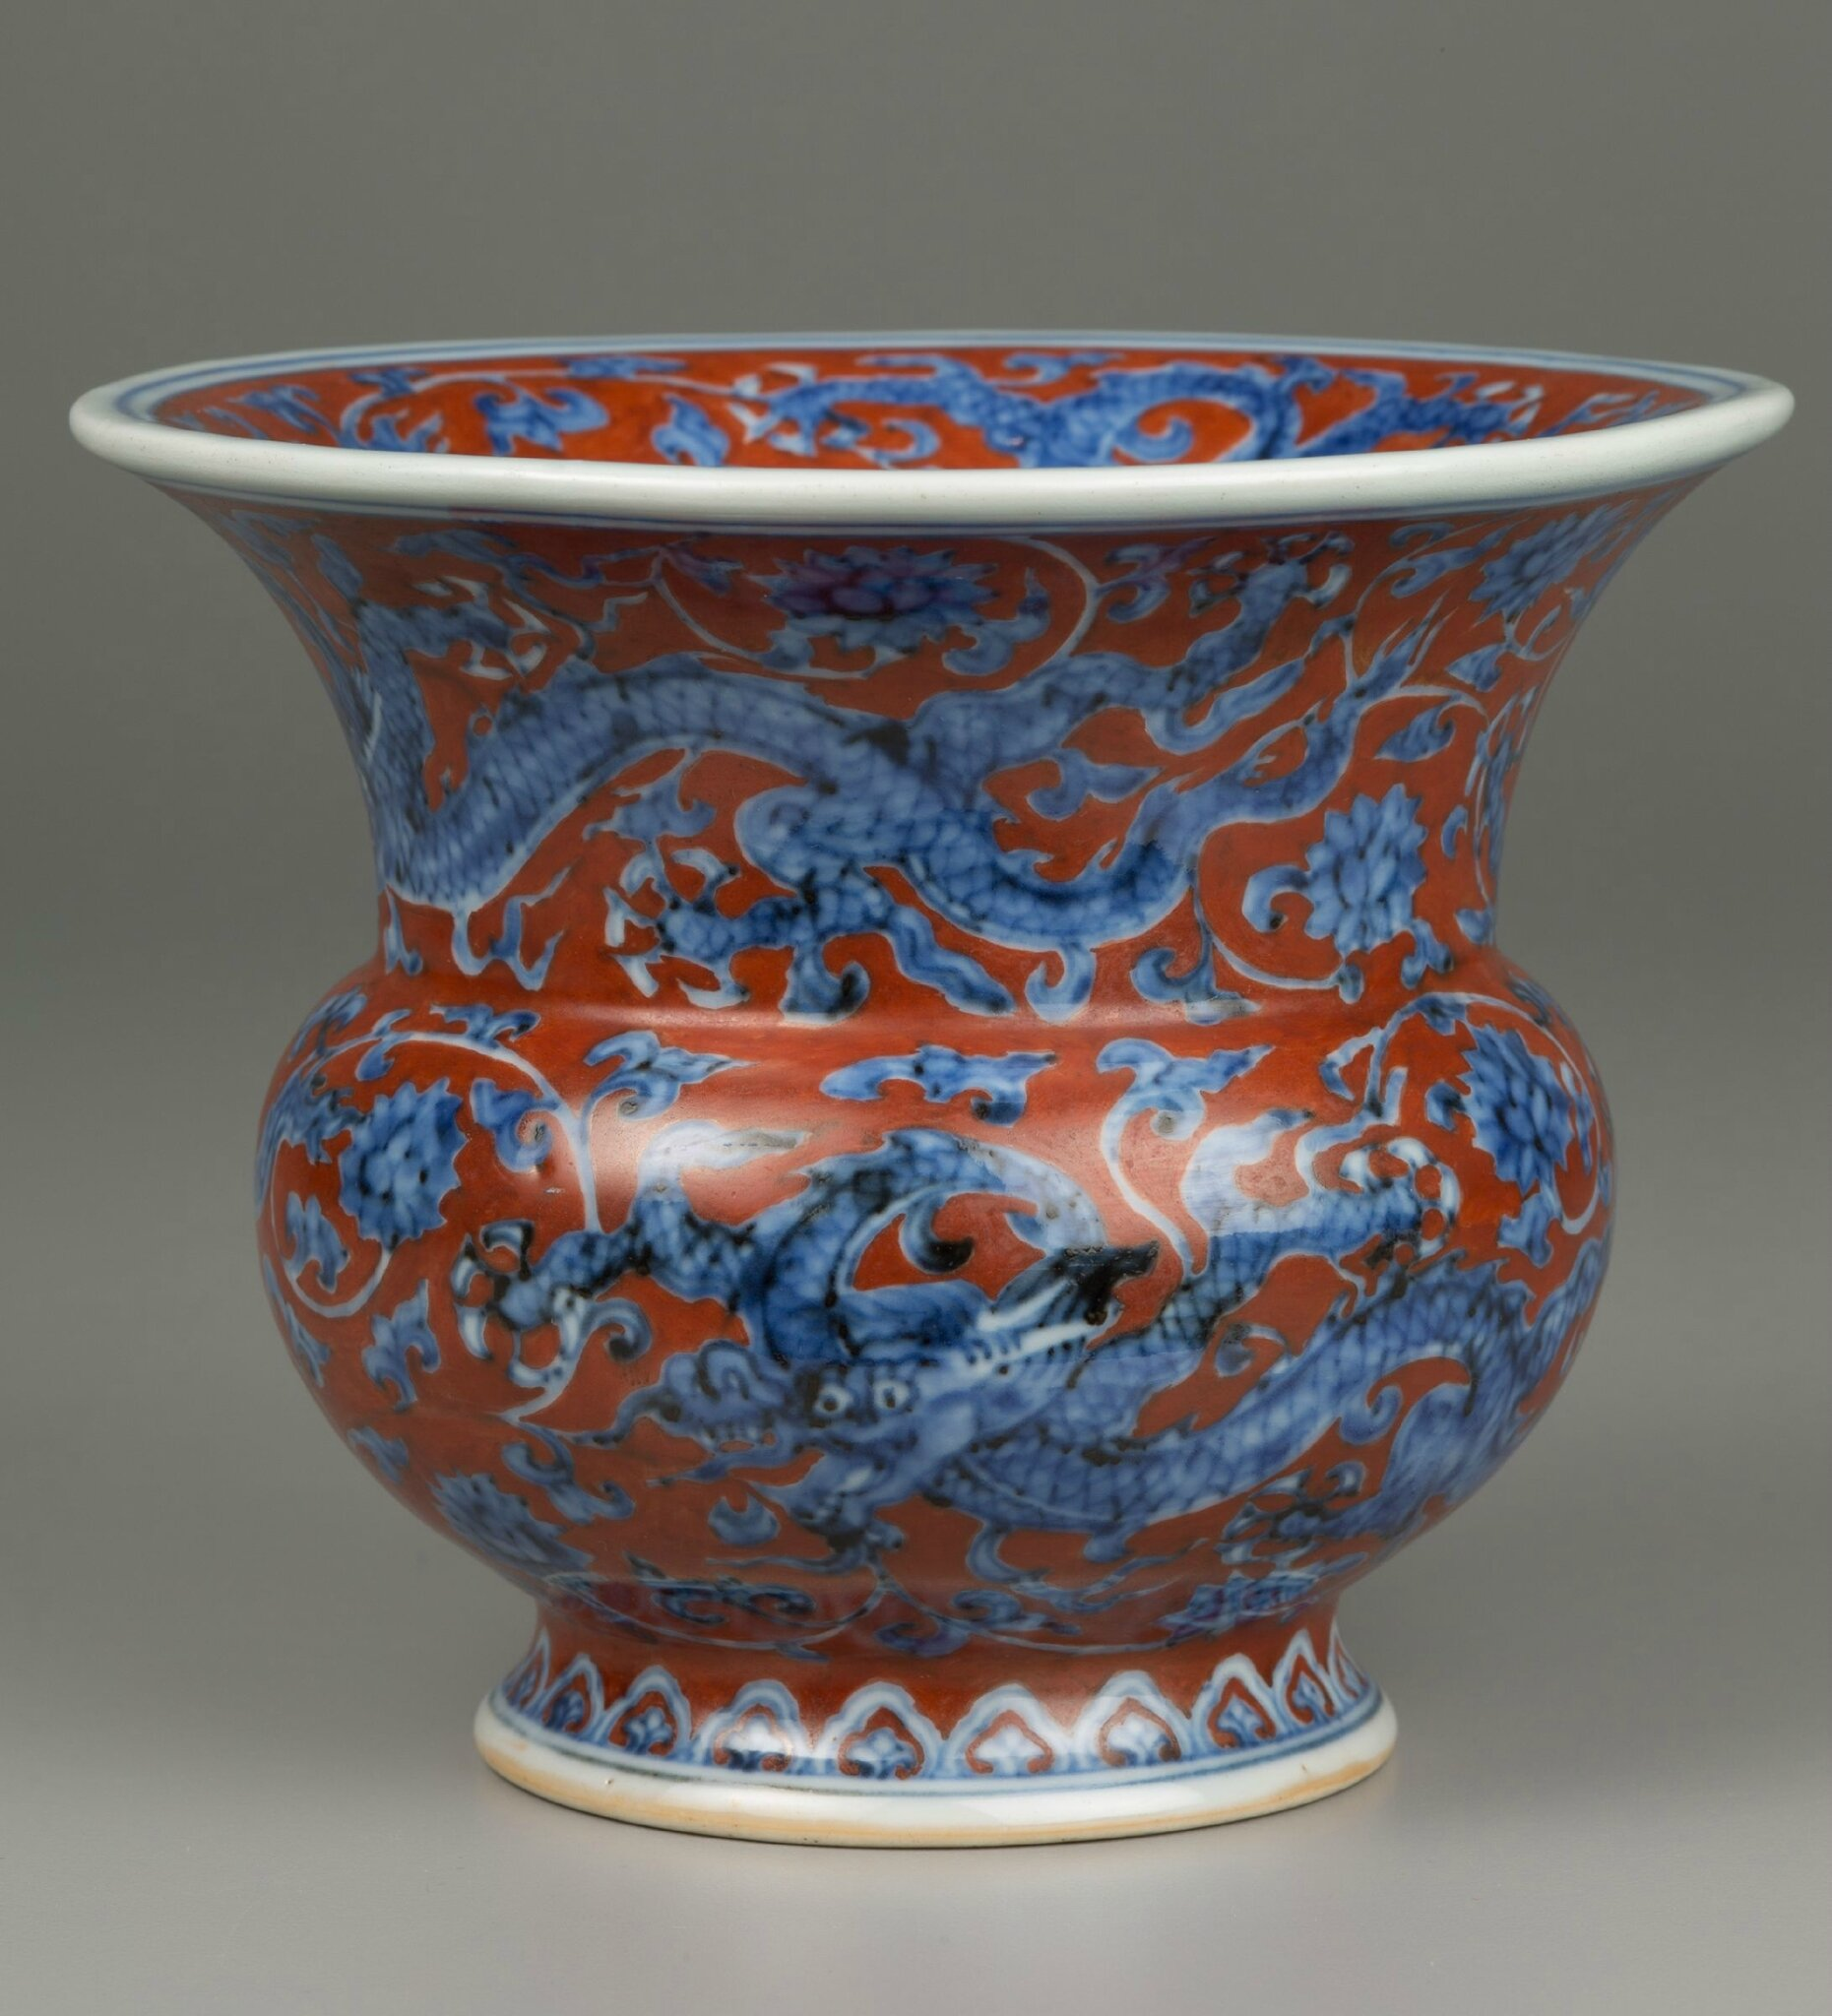 Zhadou-Shaped Vase with Dragons and Scrolling Flower Decor, Zhengde period, 1506-1521, Ming dynasty, 1368-1644